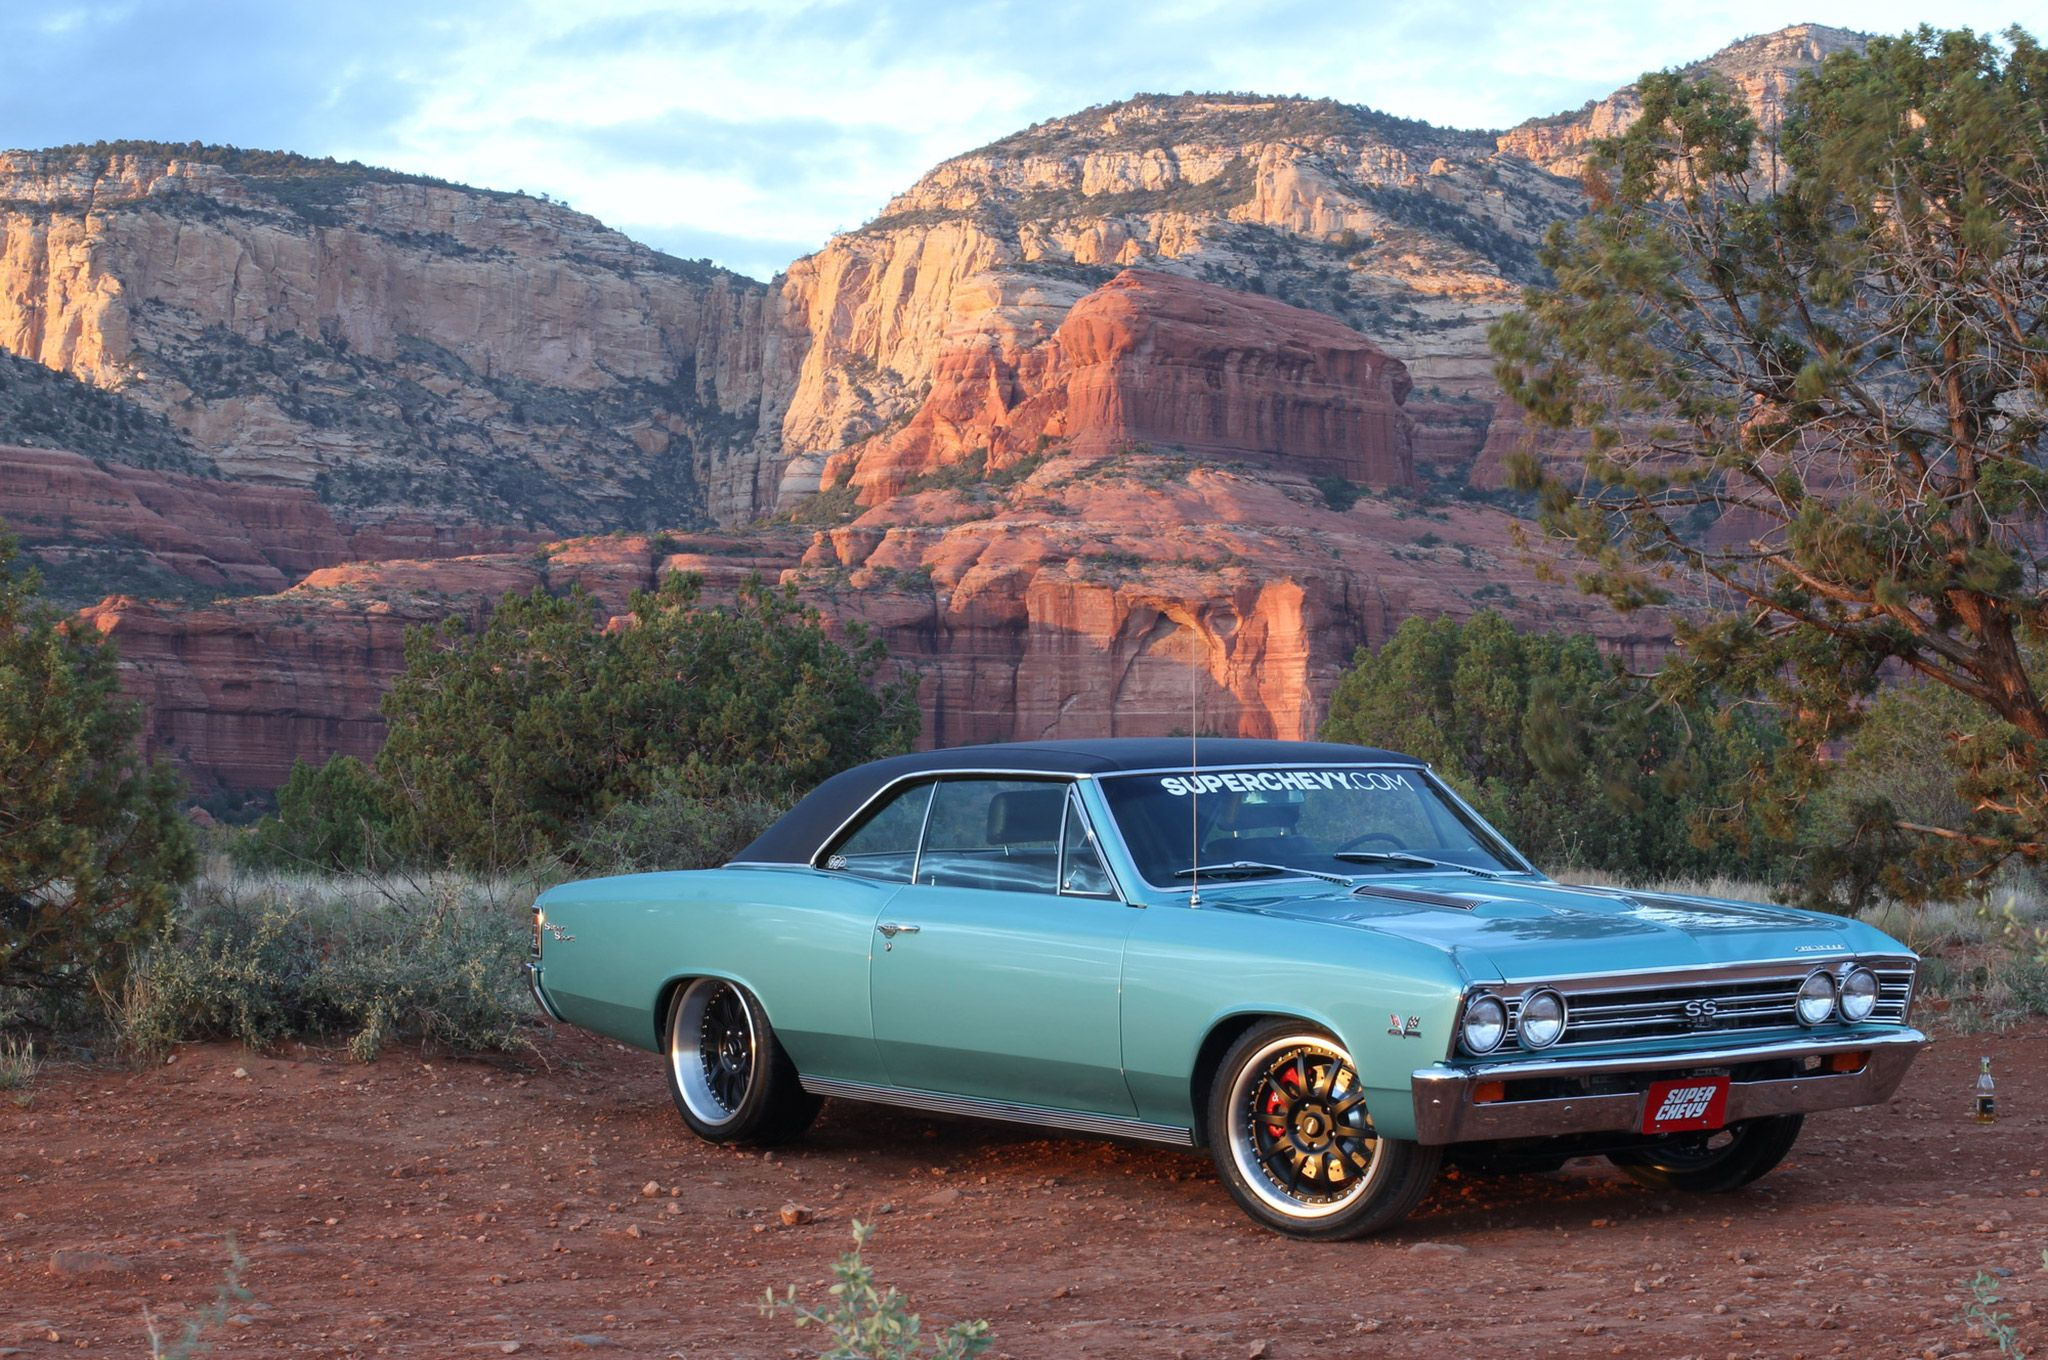 003-1967-chevelle-week-to-wicked-427-engine-install-2